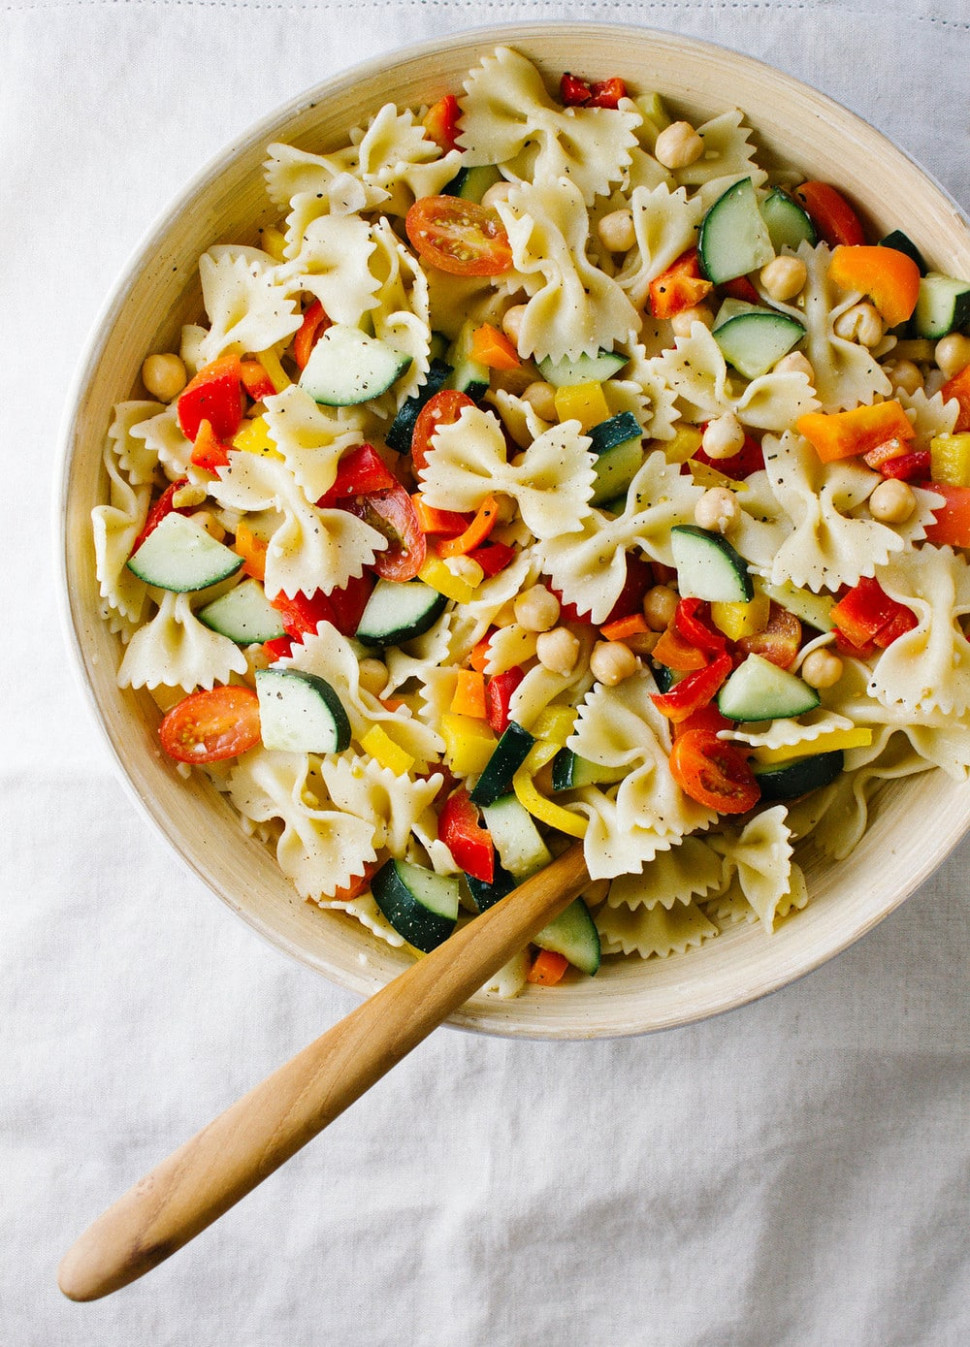 QUICK N' HEALTHY CHICKPEA + VEGETABLE PASTA SALAD - THE ...